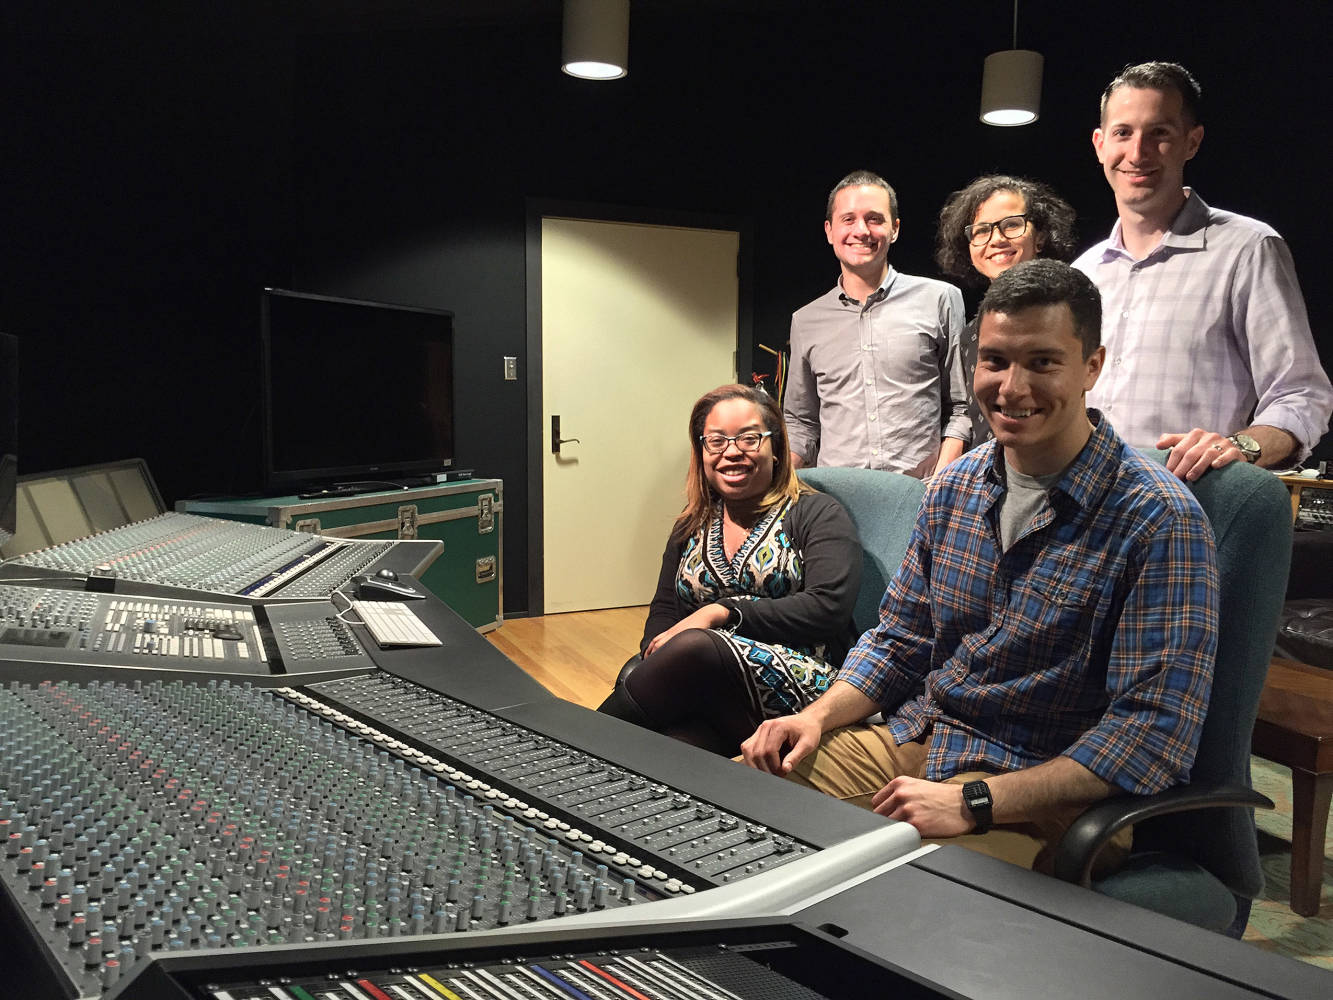 Group of five students enjoying time together in a recording studio